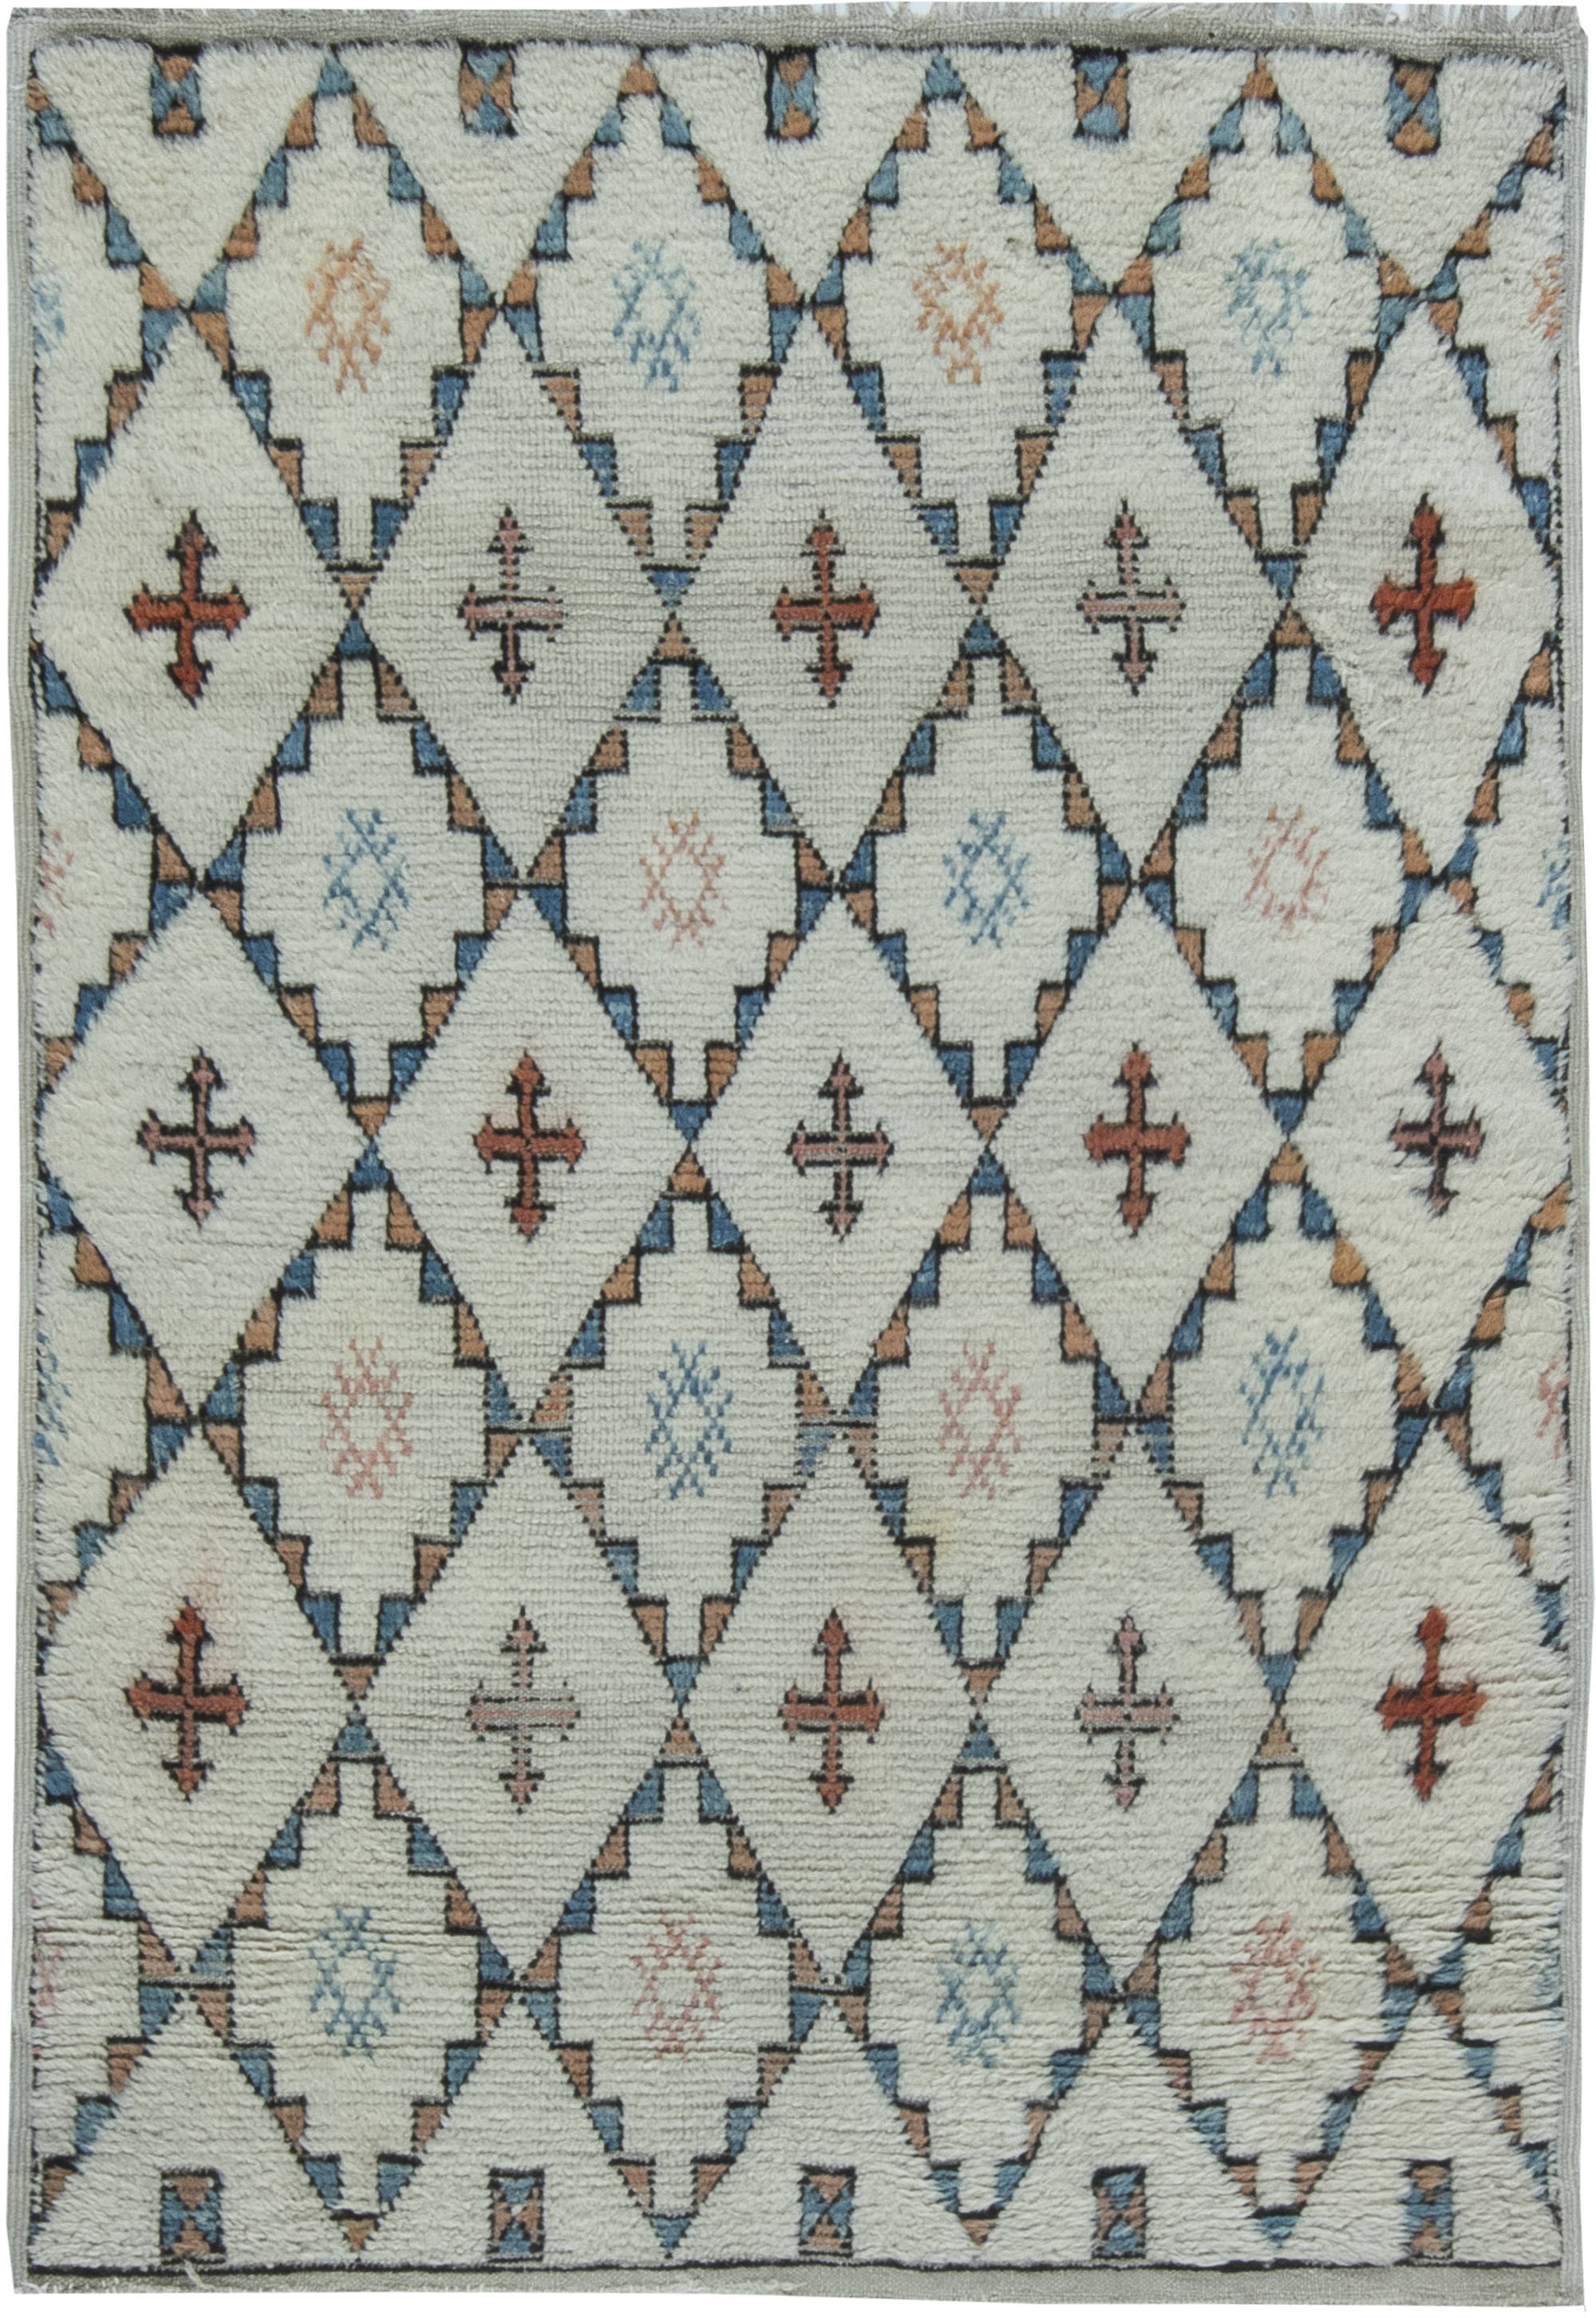 Moroccan Rugs By Doris Leslie Blau New York - New patterned rugs designs